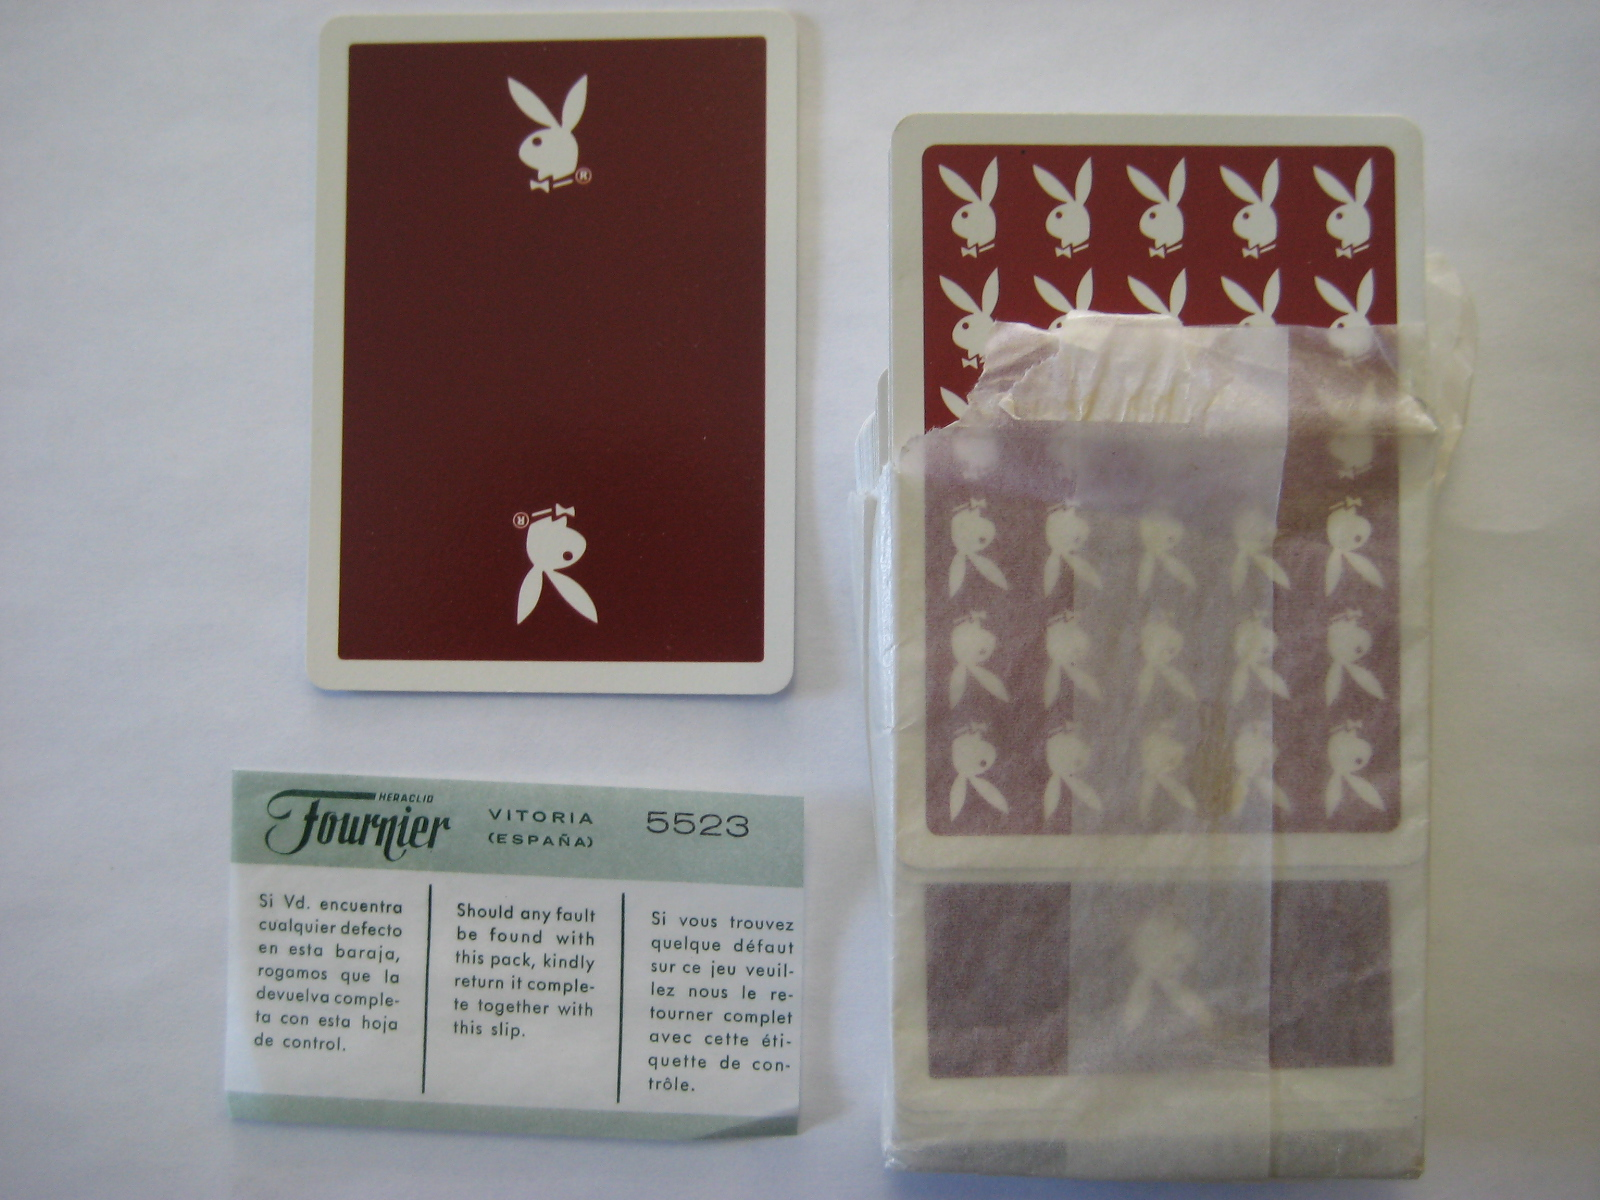 Maroon London Playboy Casino Cards